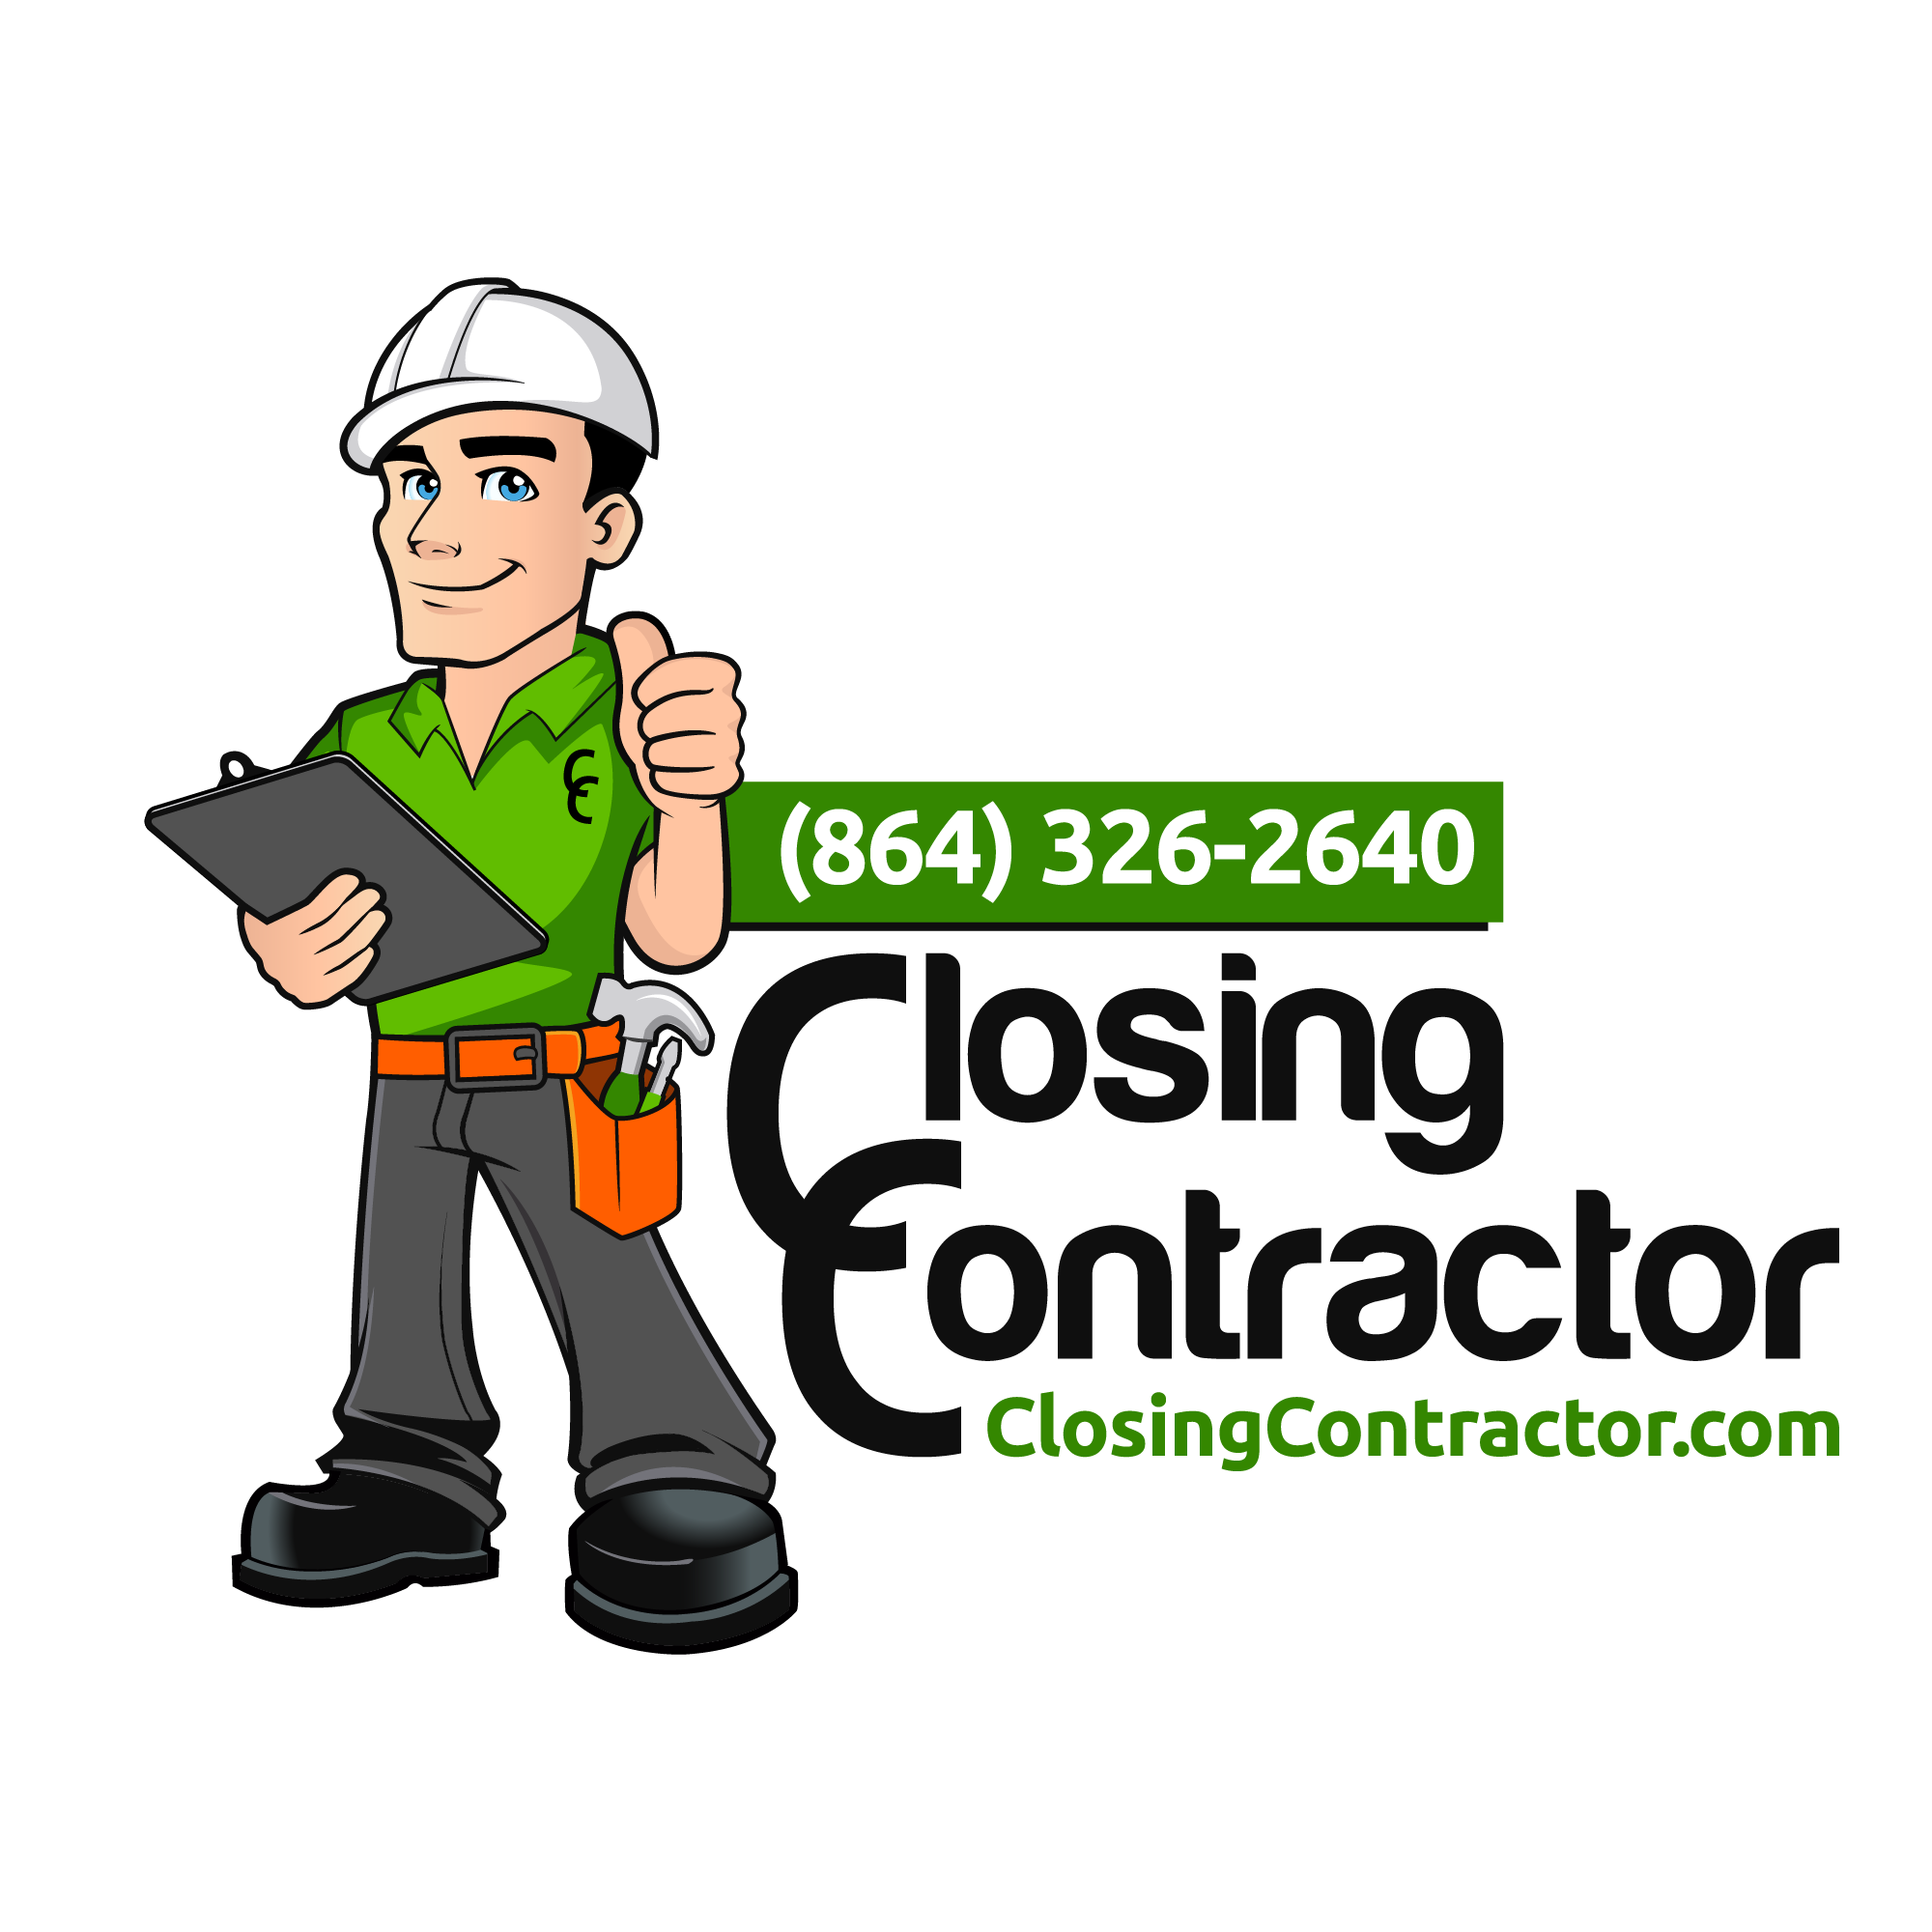 Closing Contractor in Greenville, SC - Logo